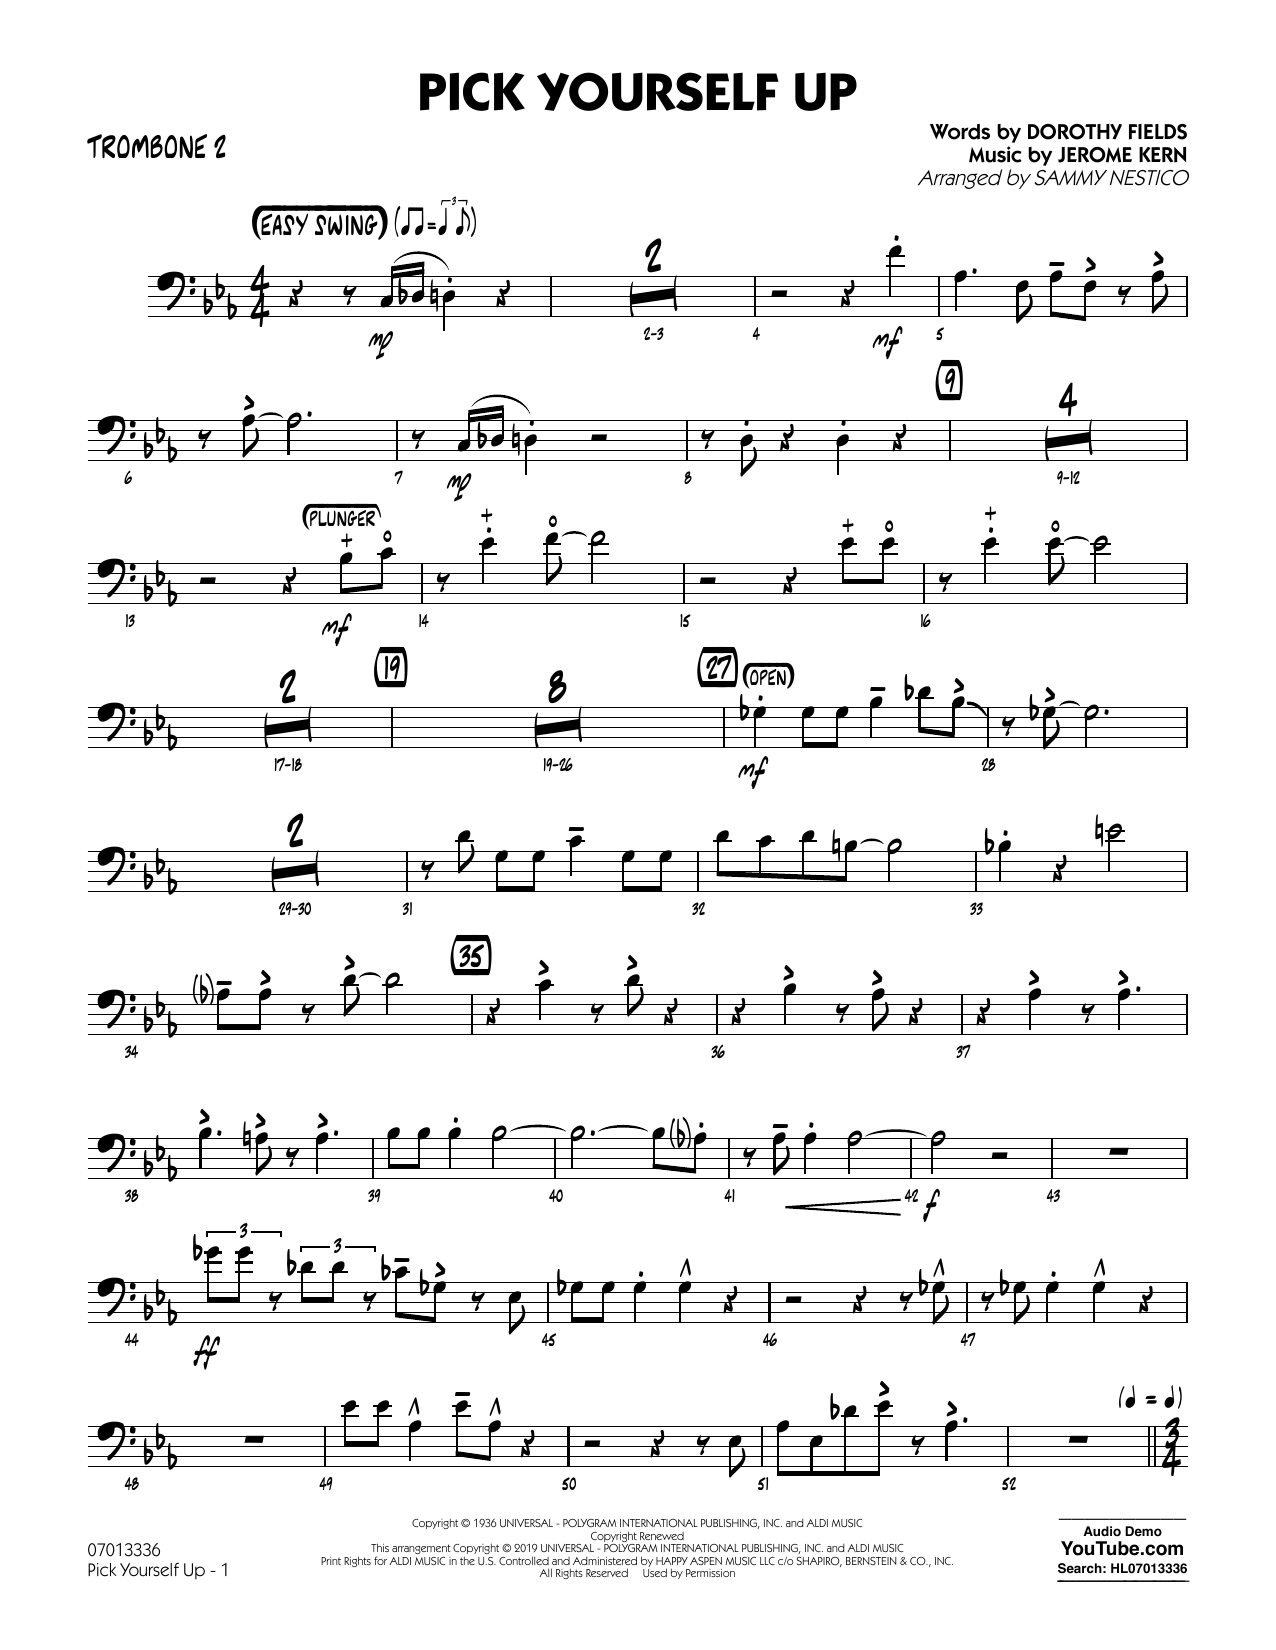 Jerome Kern Pick Yourself Up (arr. Sammy Nestico) - Trombone 2 sheet music preview music notes and score for Jazz Ensemble including 2 page(s)